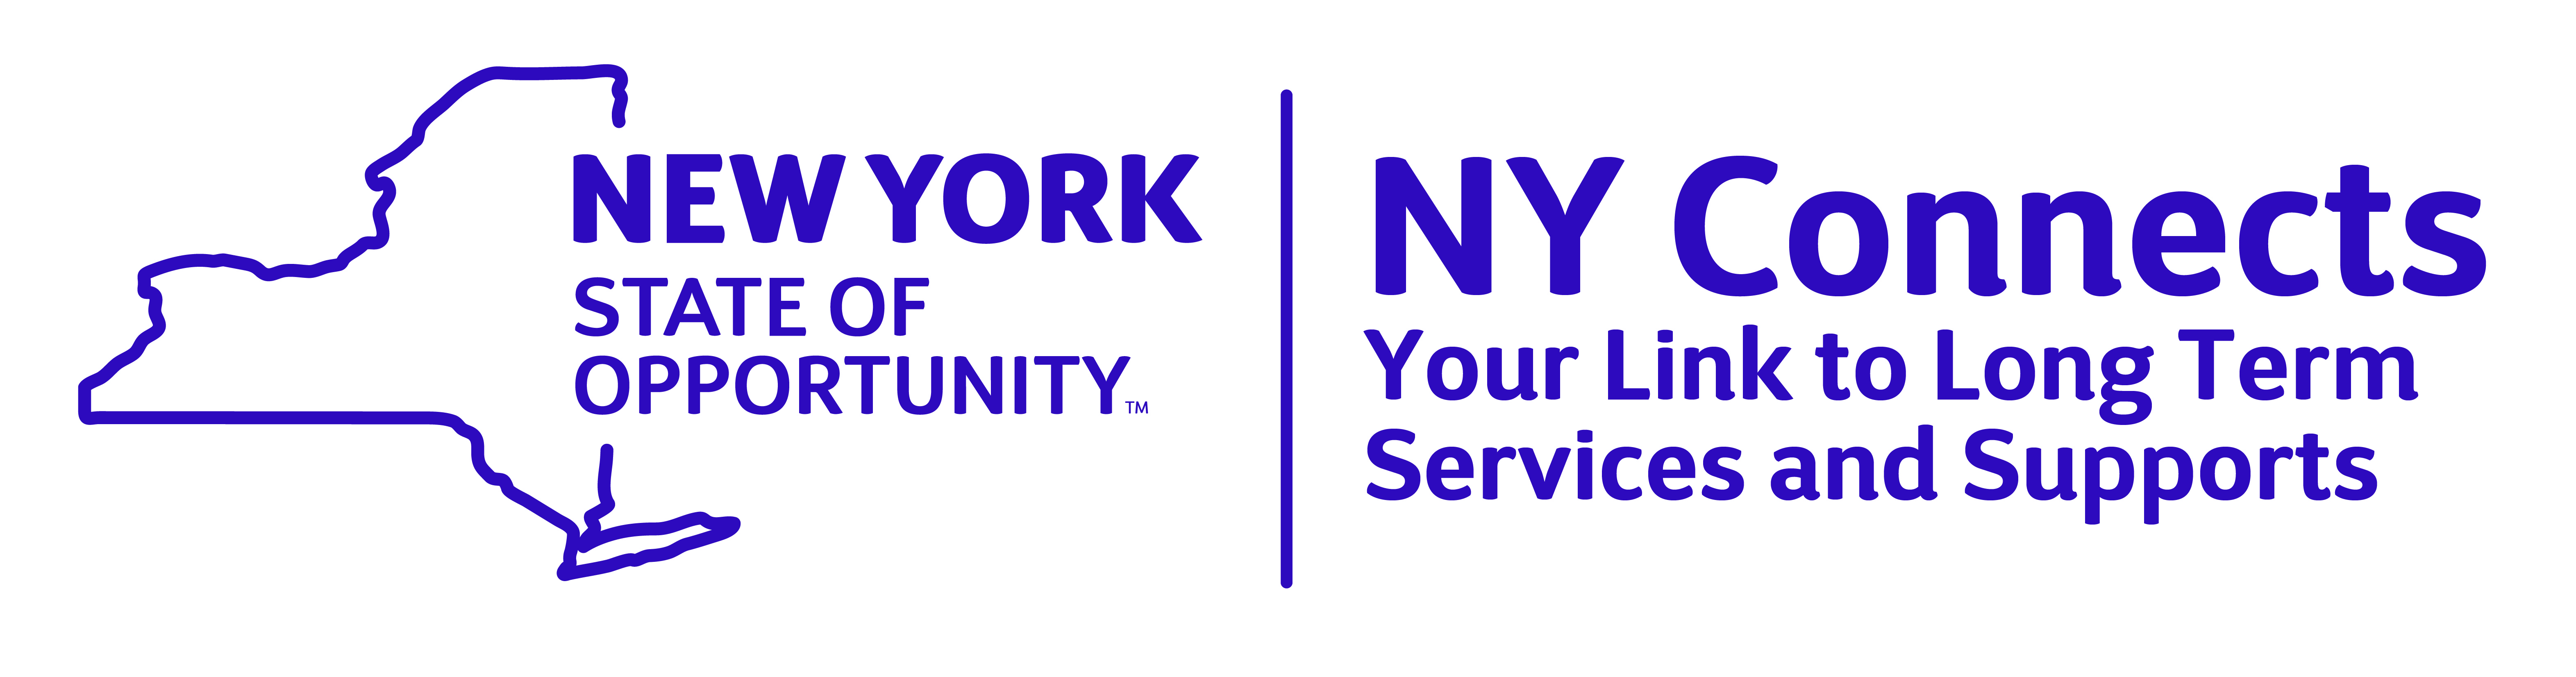 NY Connects